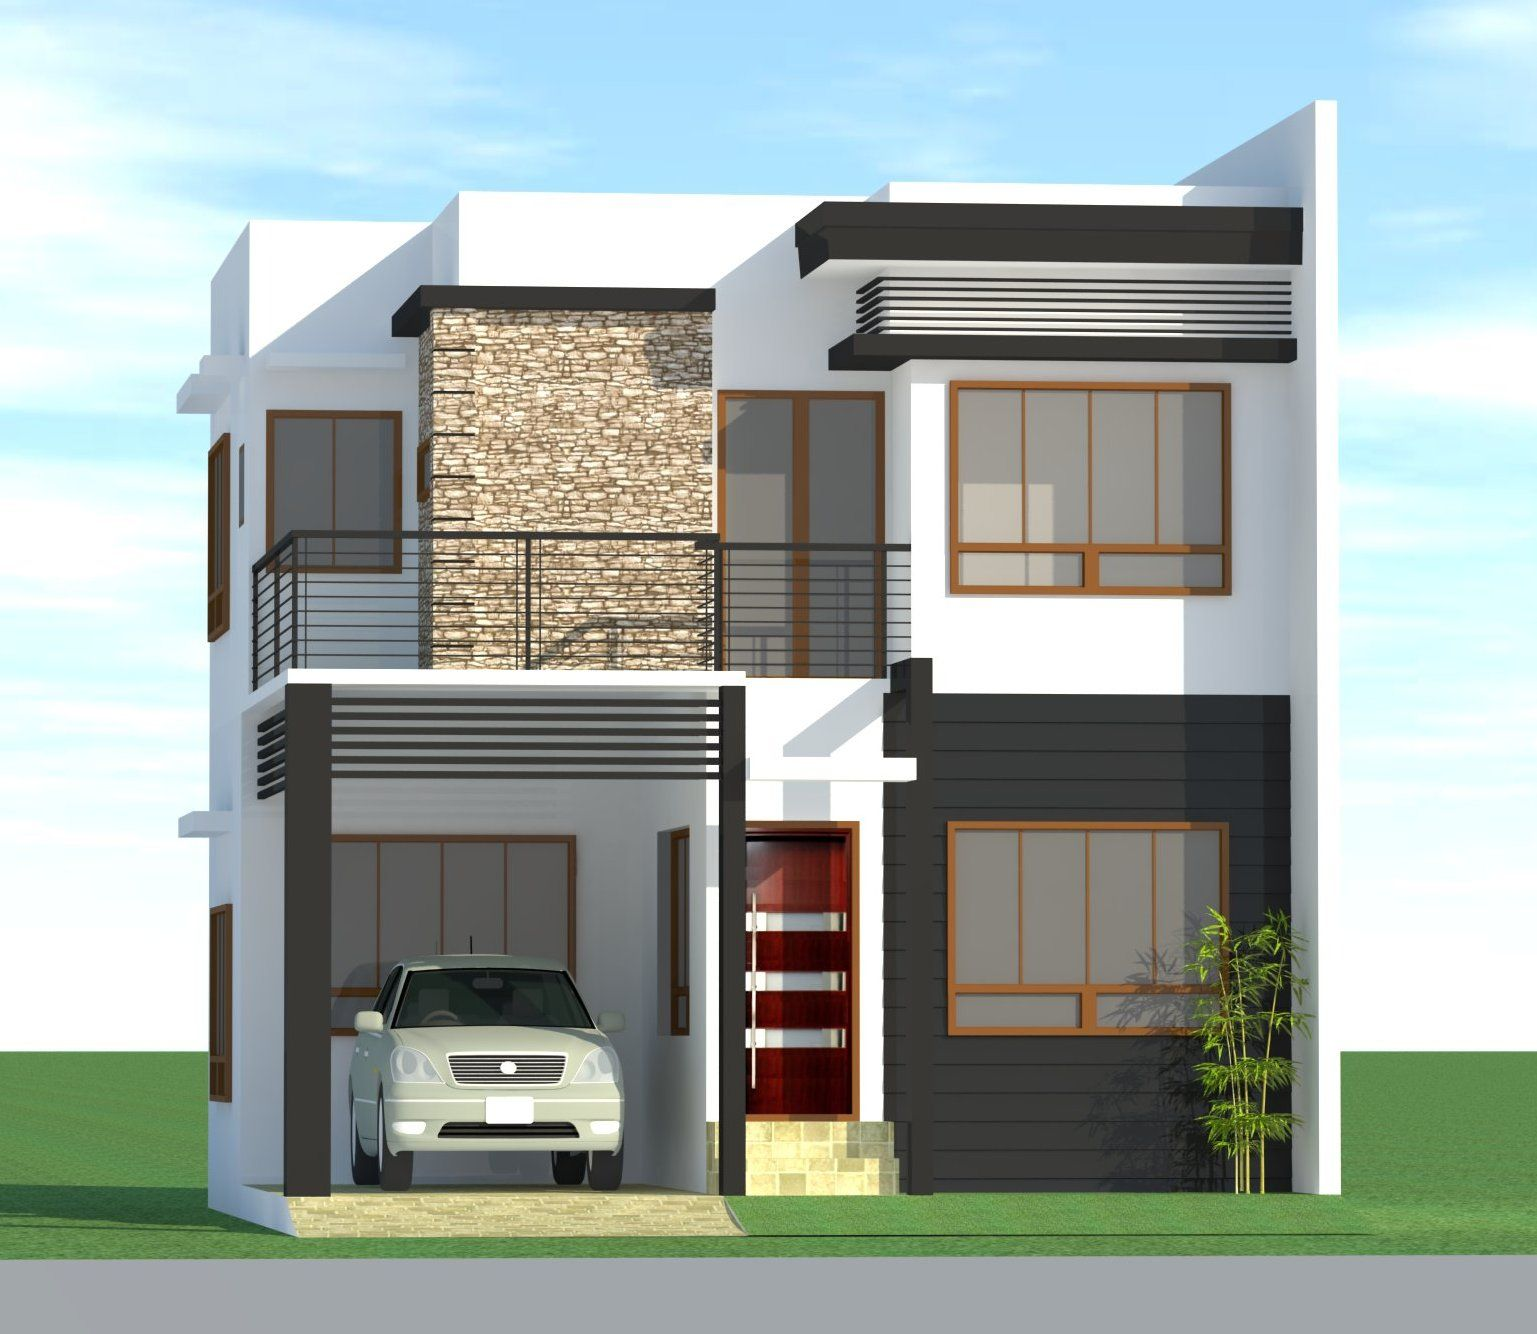 22b1450c41c6c173b28f2e37745a017f - 24+ Modern Small House Design Ideas Philippines Images